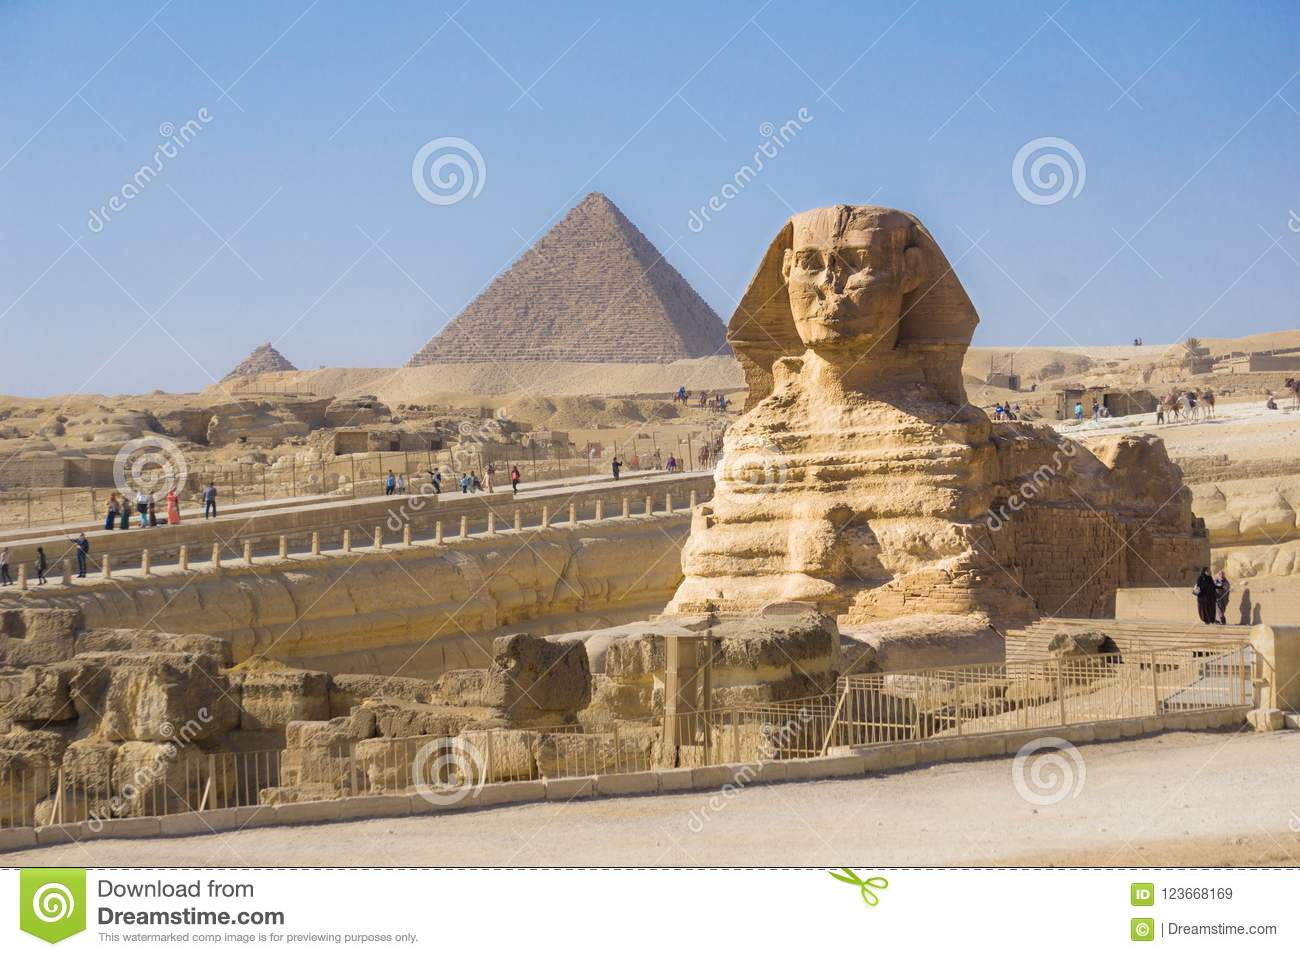 The Great Pyramid Of Giza And Sphinx, Cairo, Egypt